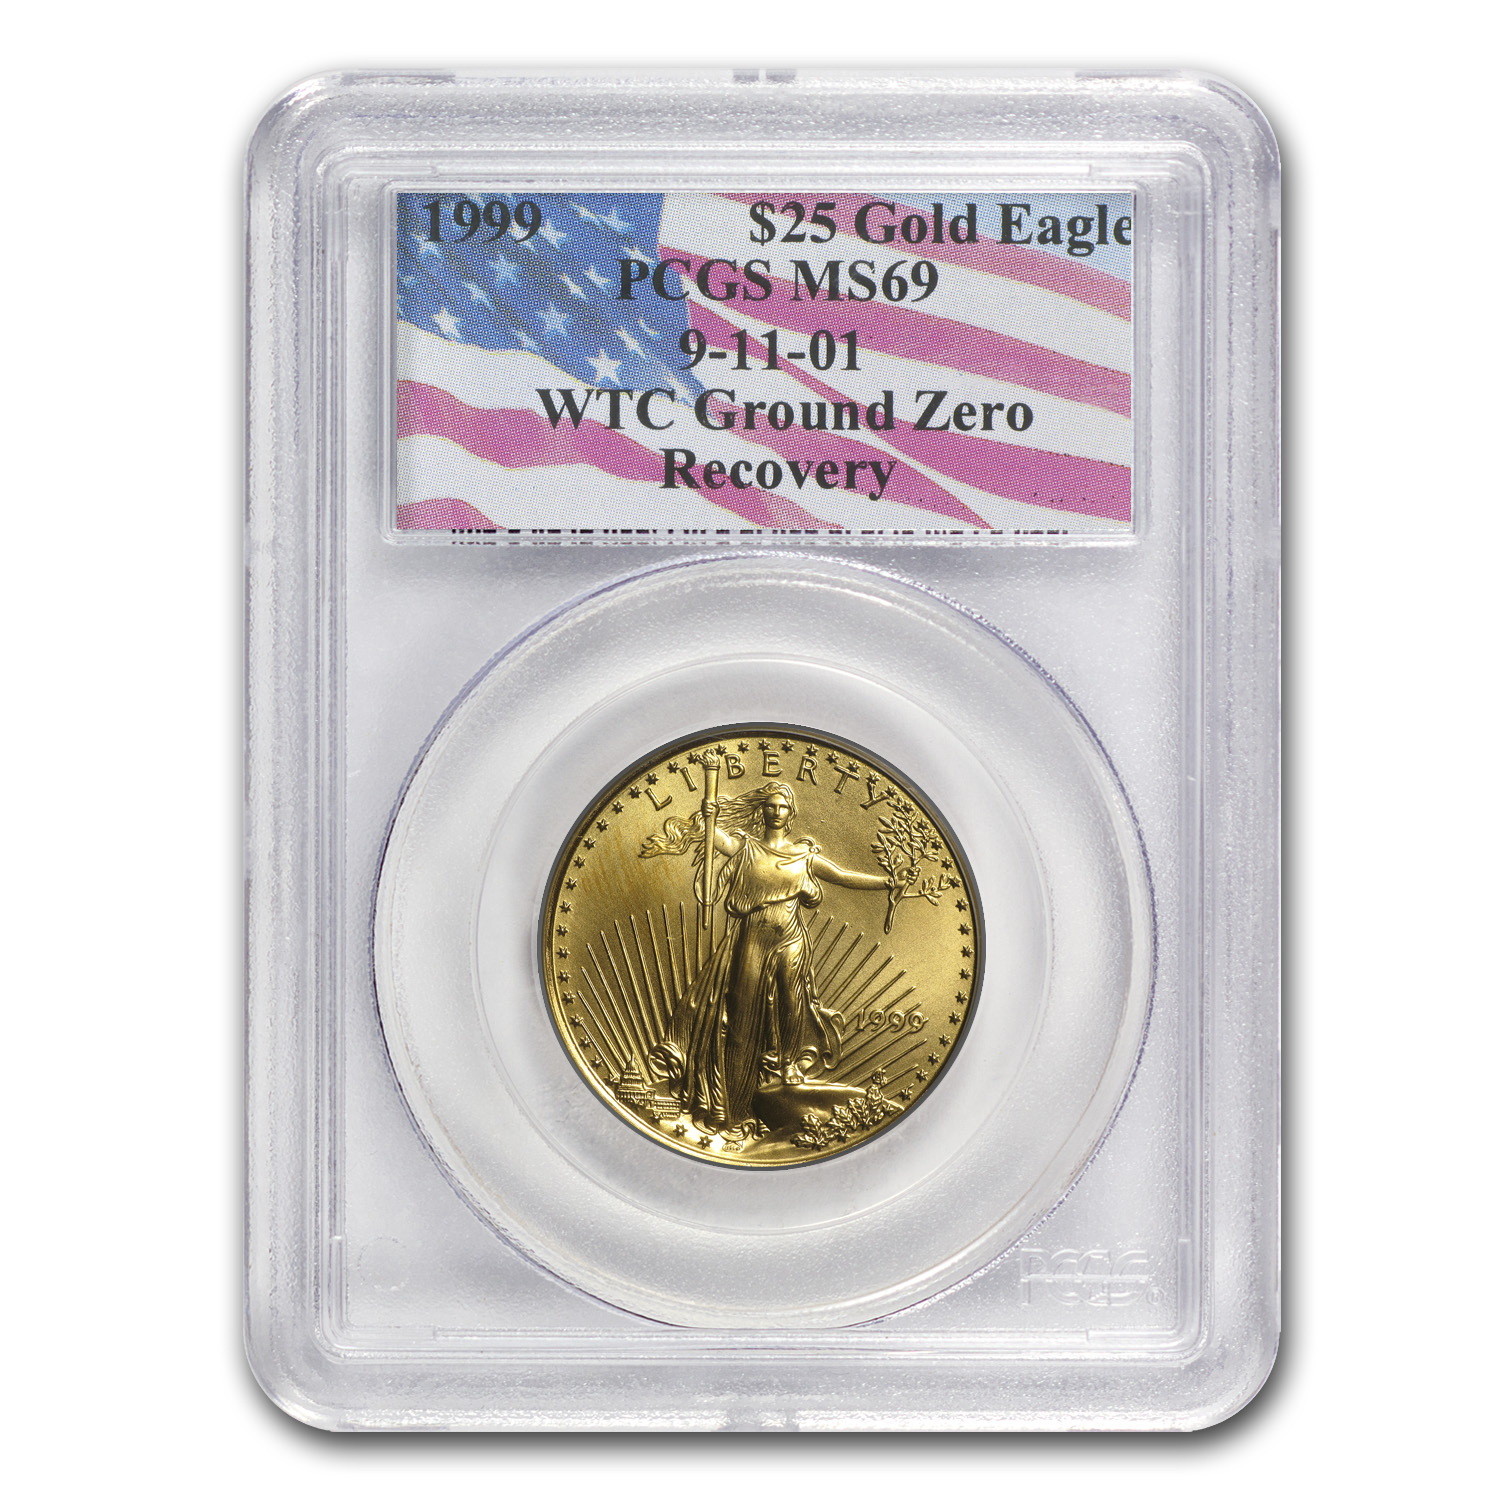 1999 1/2 oz Gold American Eagle MS-69 PCGS (World Trade Center)